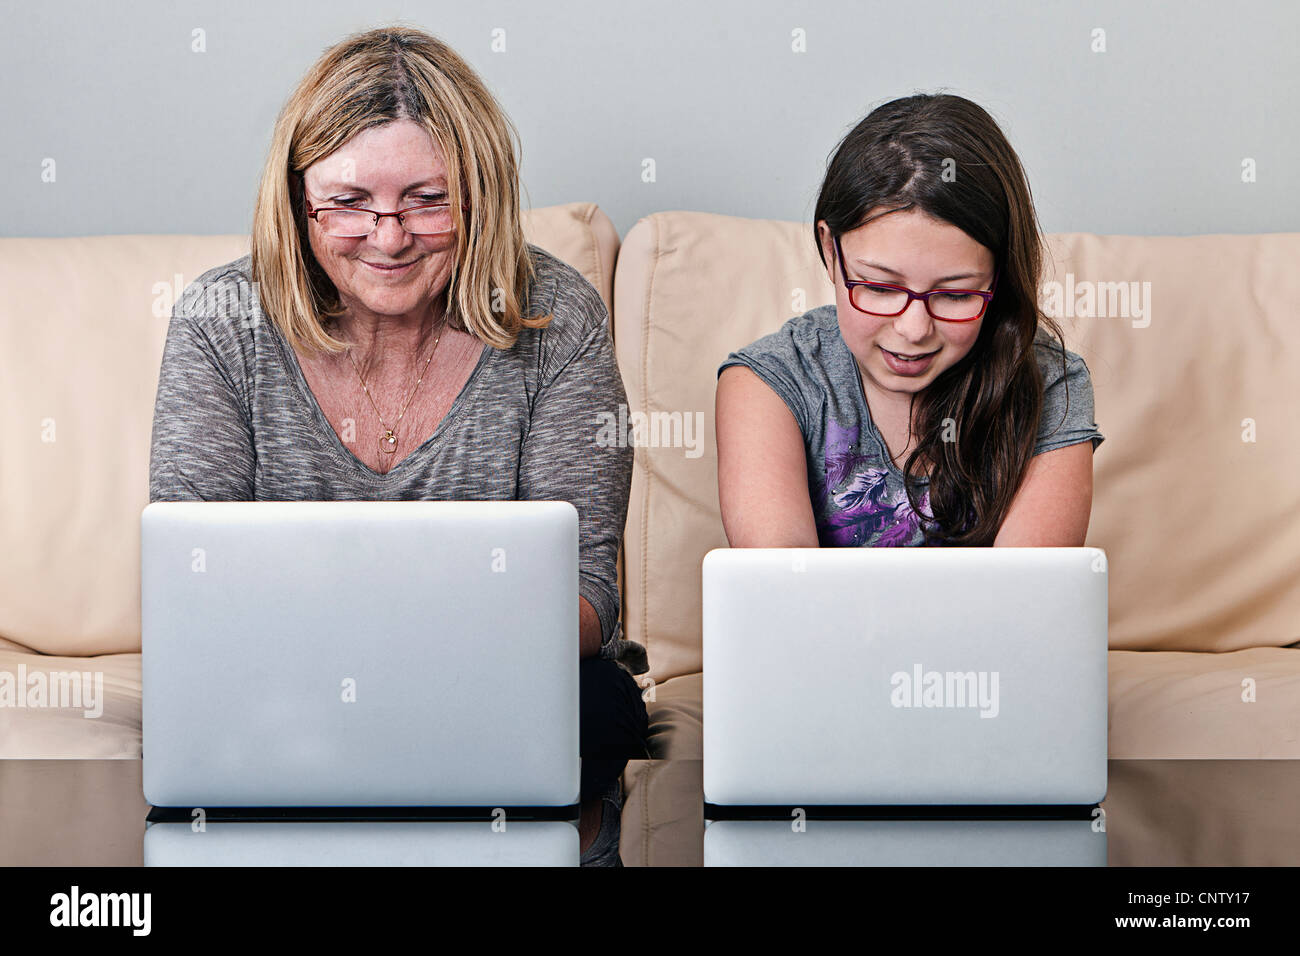 Grandmother and Granddaughter with Laptops Stock Photo